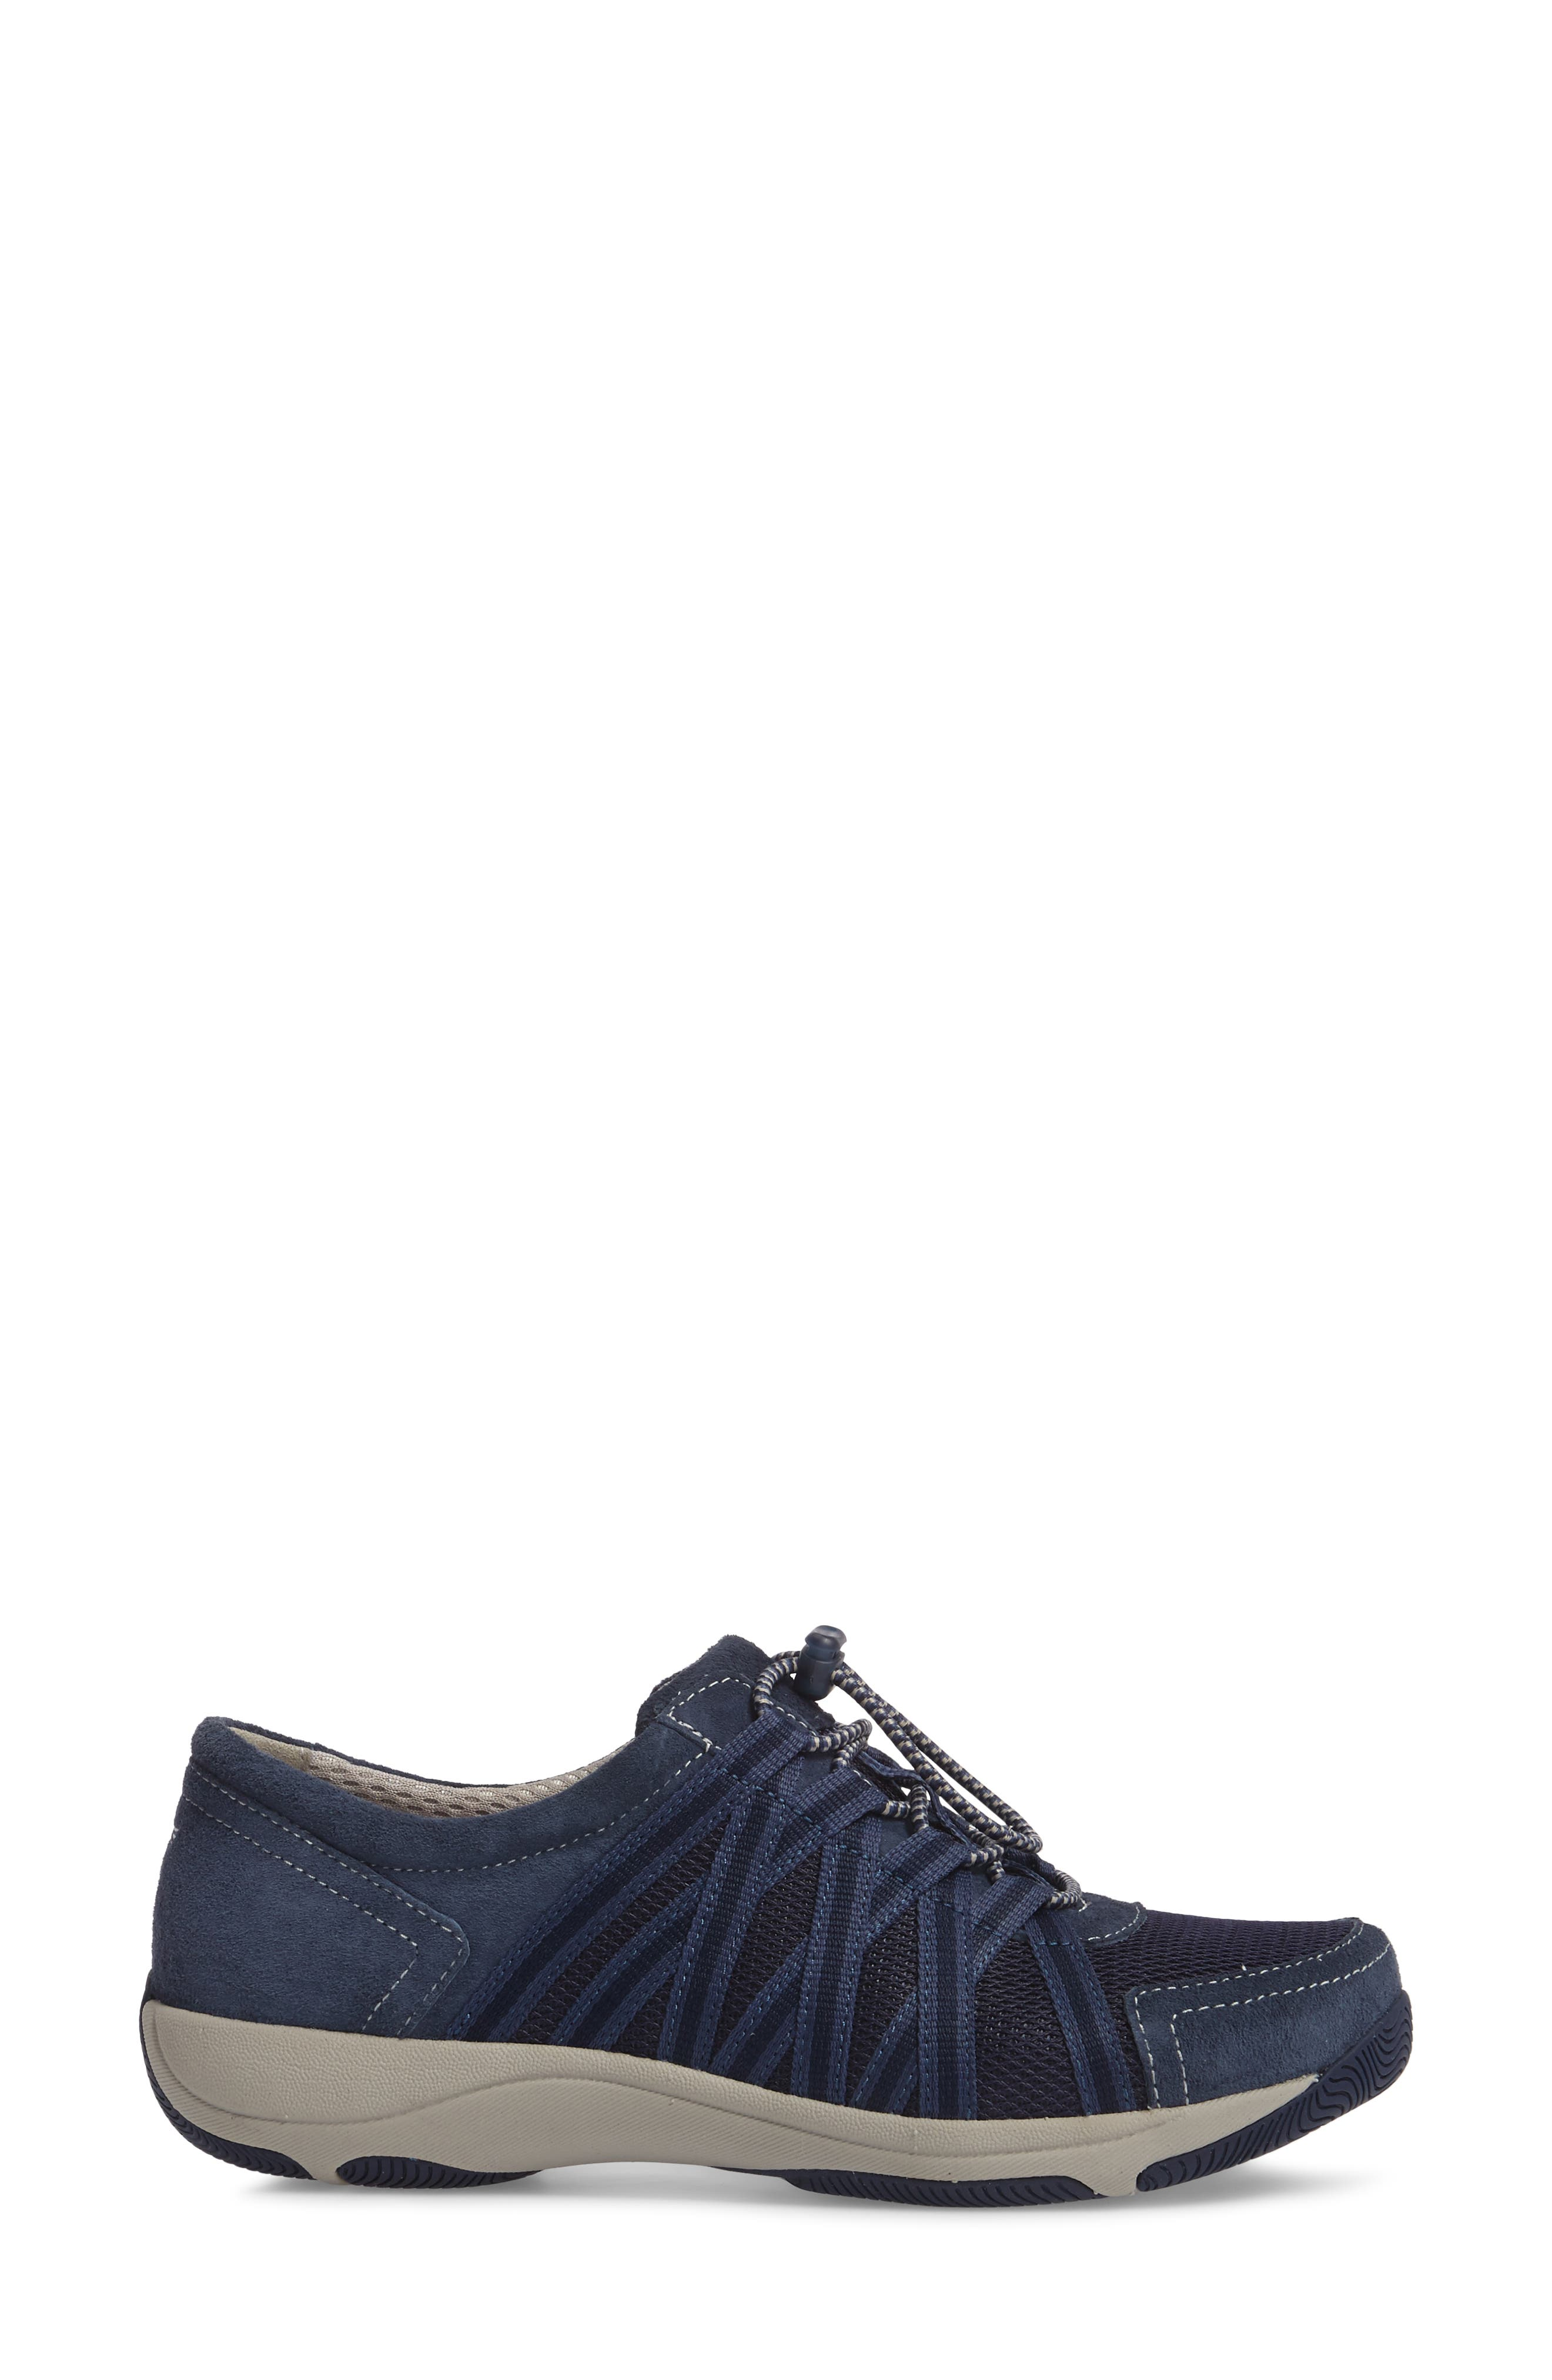 Halifax Collection Honor Sneaker,                             Alternate thumbnail 31, color,